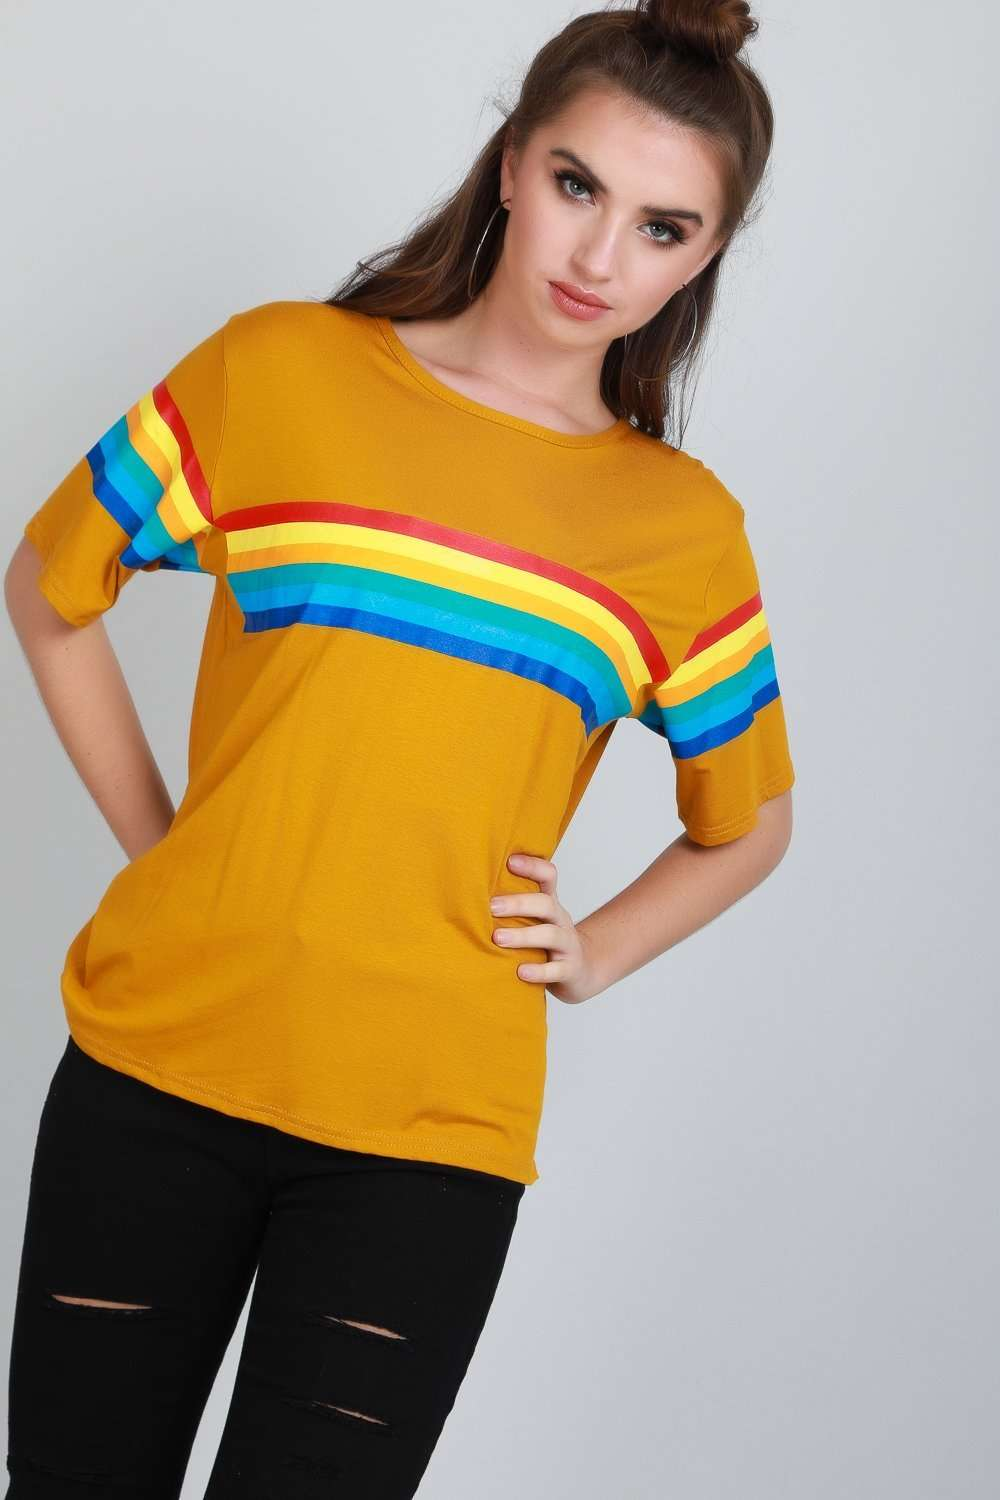 Katie Rainbow Striped Oversized Jersey Tshirt - bejealous-com